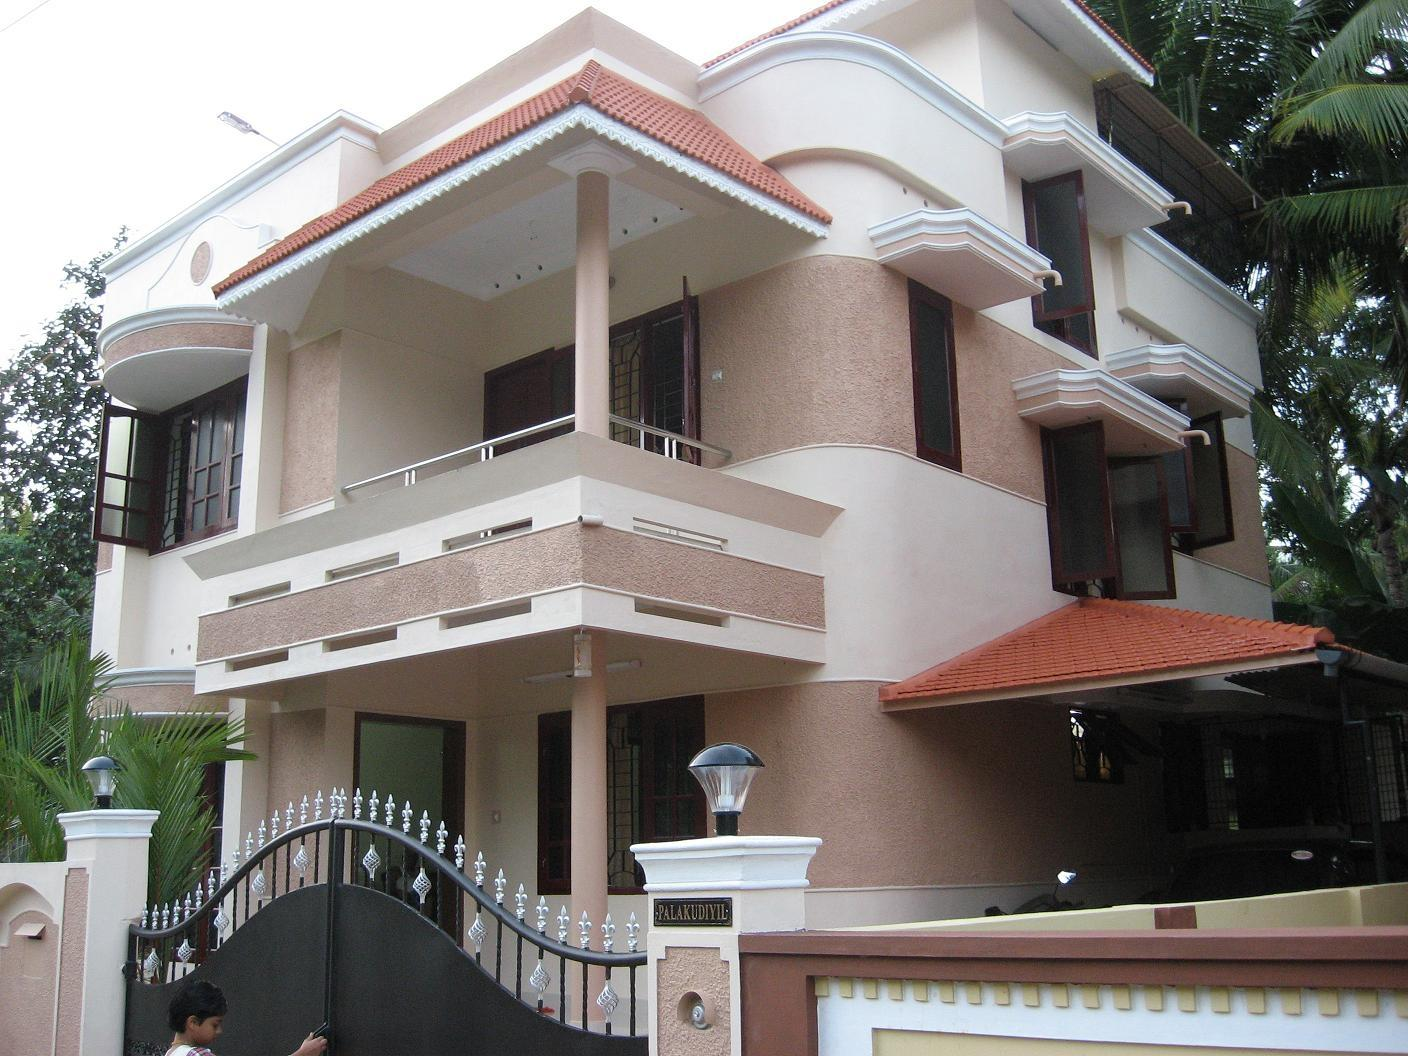 Front Elevation Designs For Small Houses In Chennai : Front elevation designs for small independent houses in